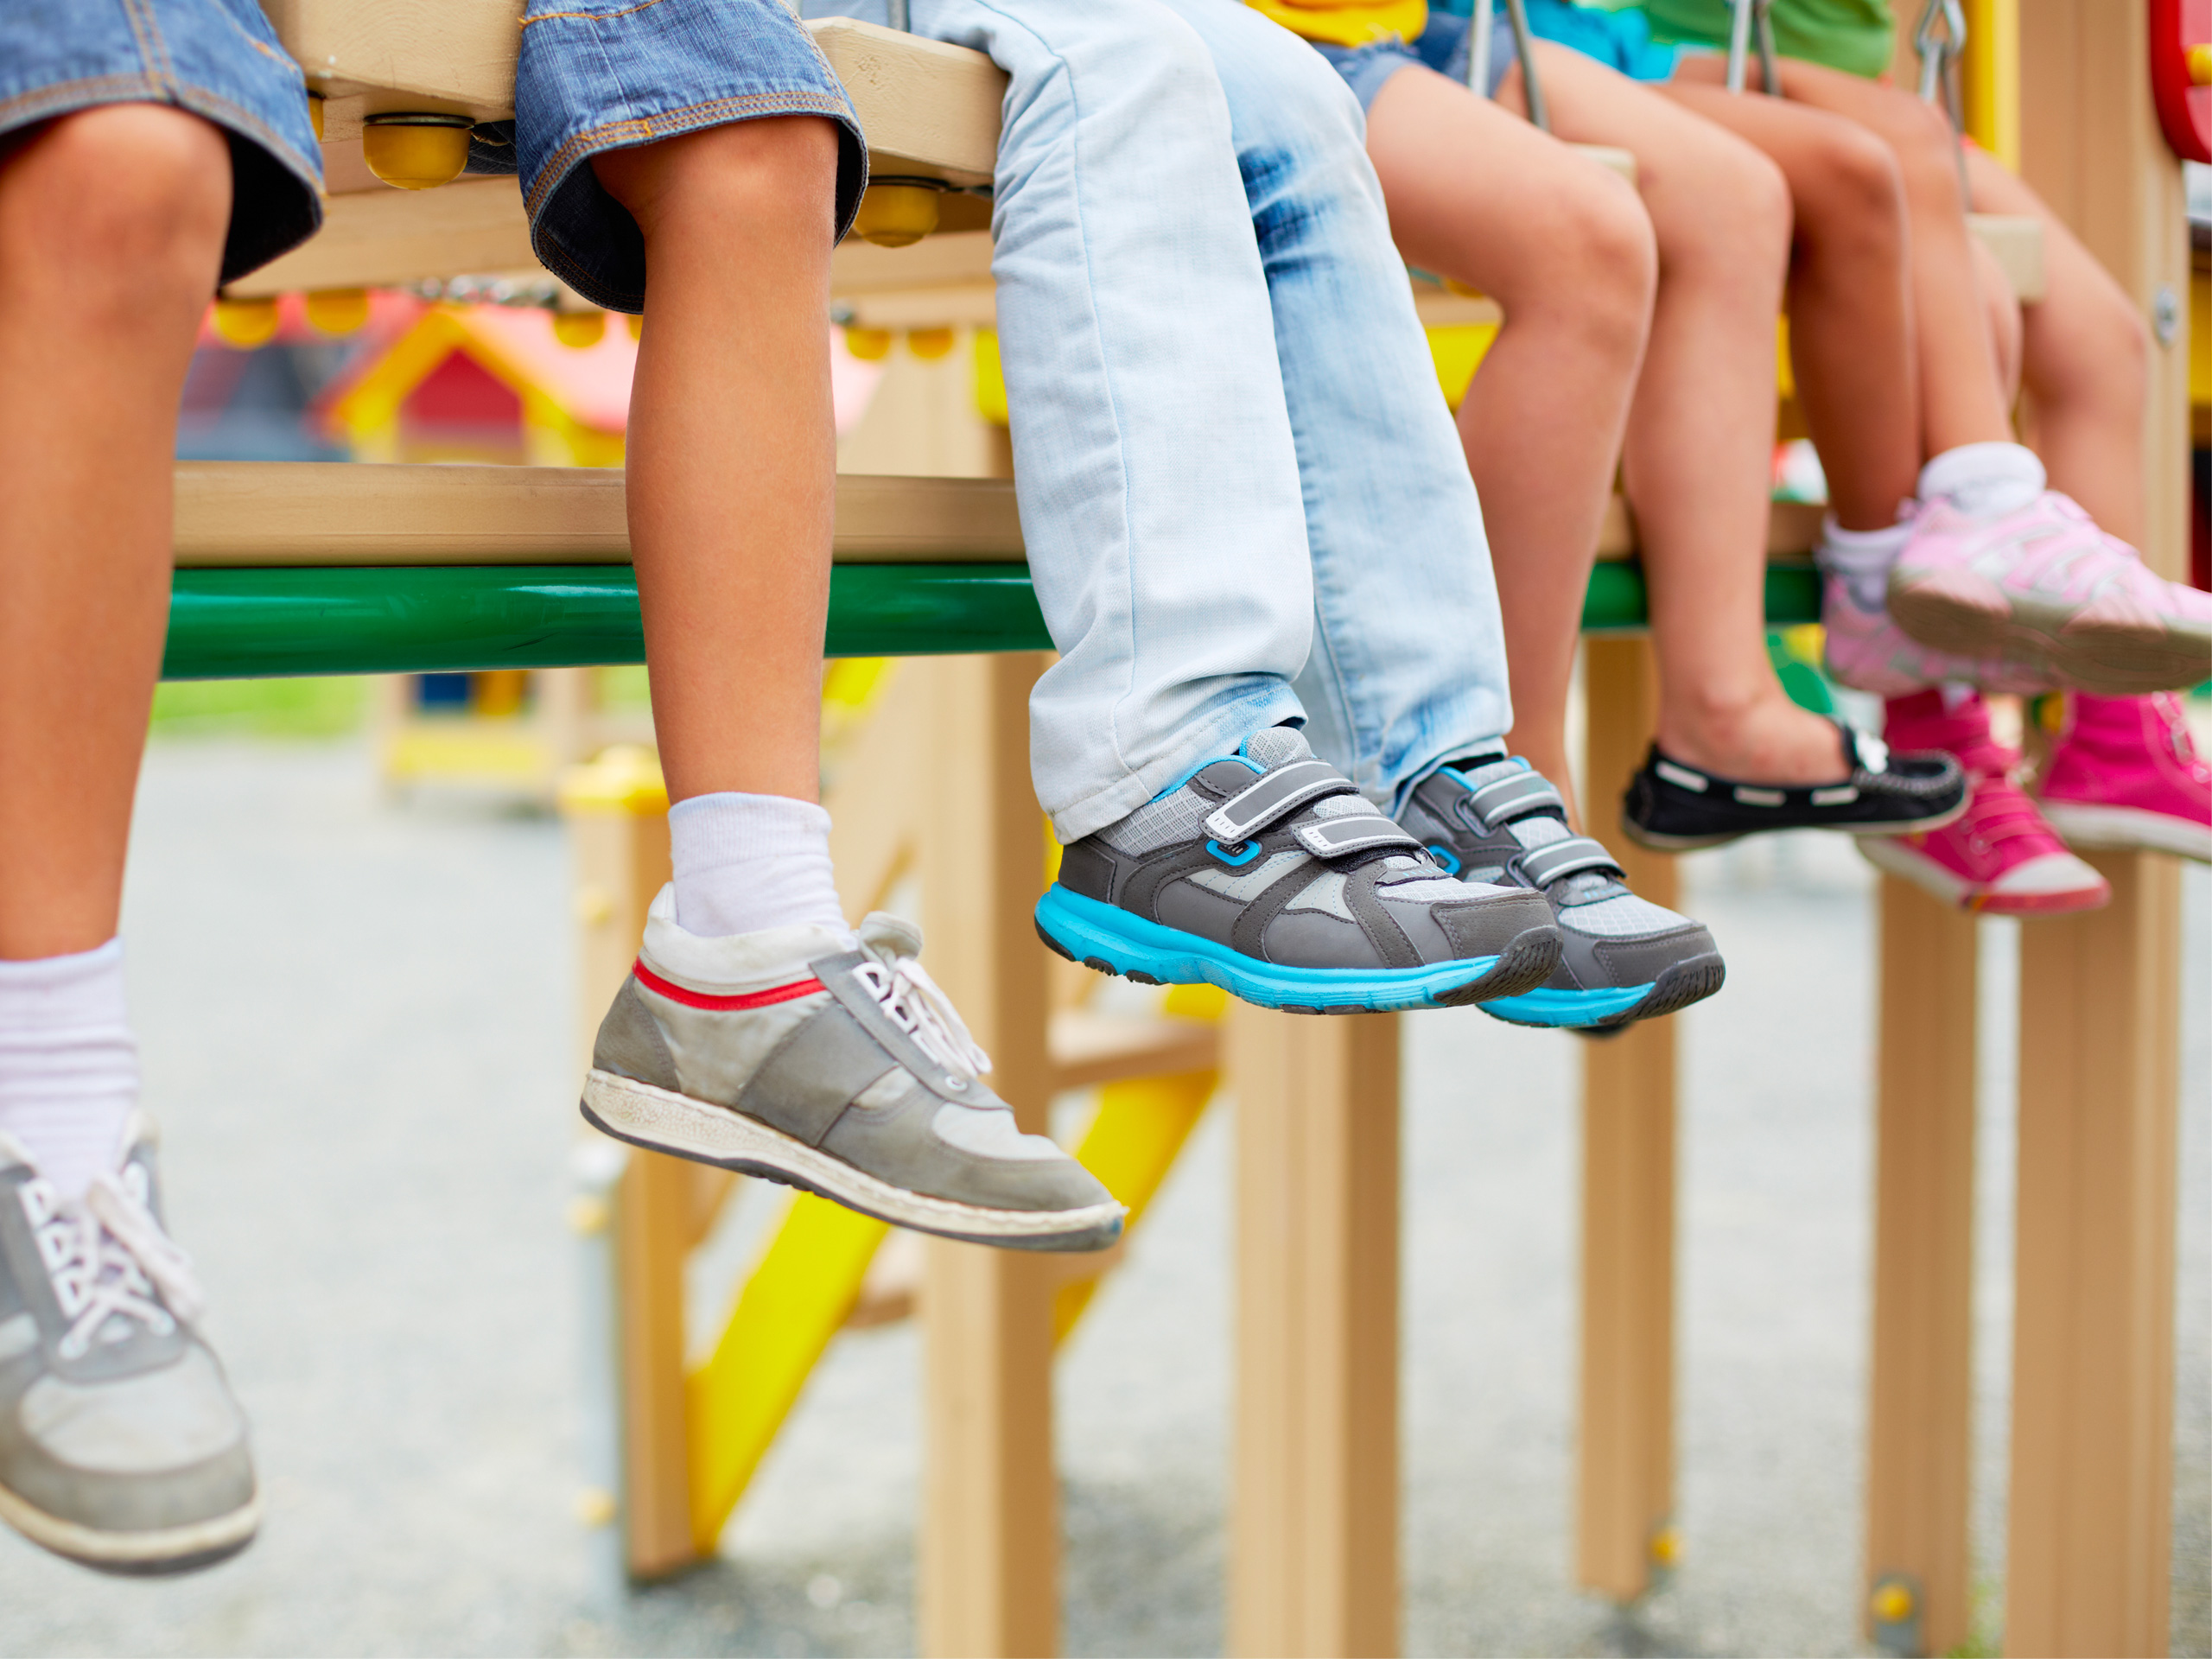 kids sitting in a row with sneakers